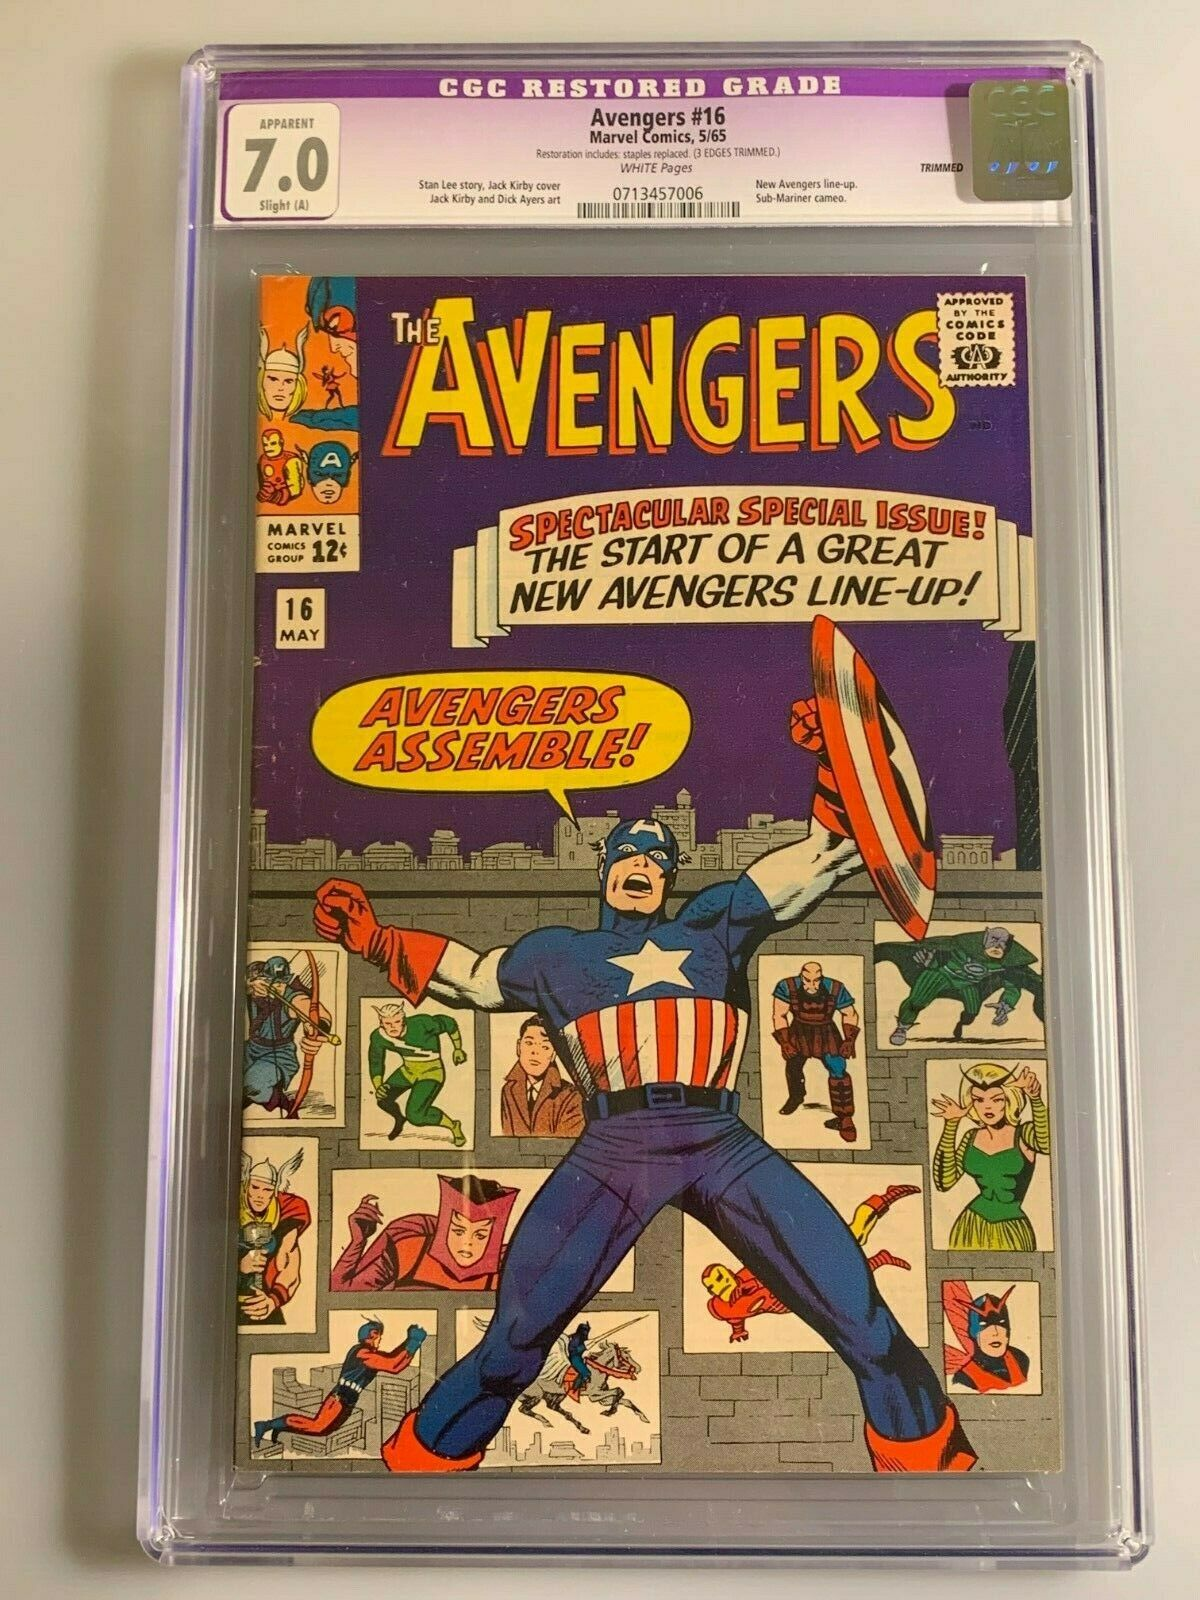 Avengers 16 - CGC 7.0 - Restored - New Avengers Line-Up - AVENGERS ASSEMBLE